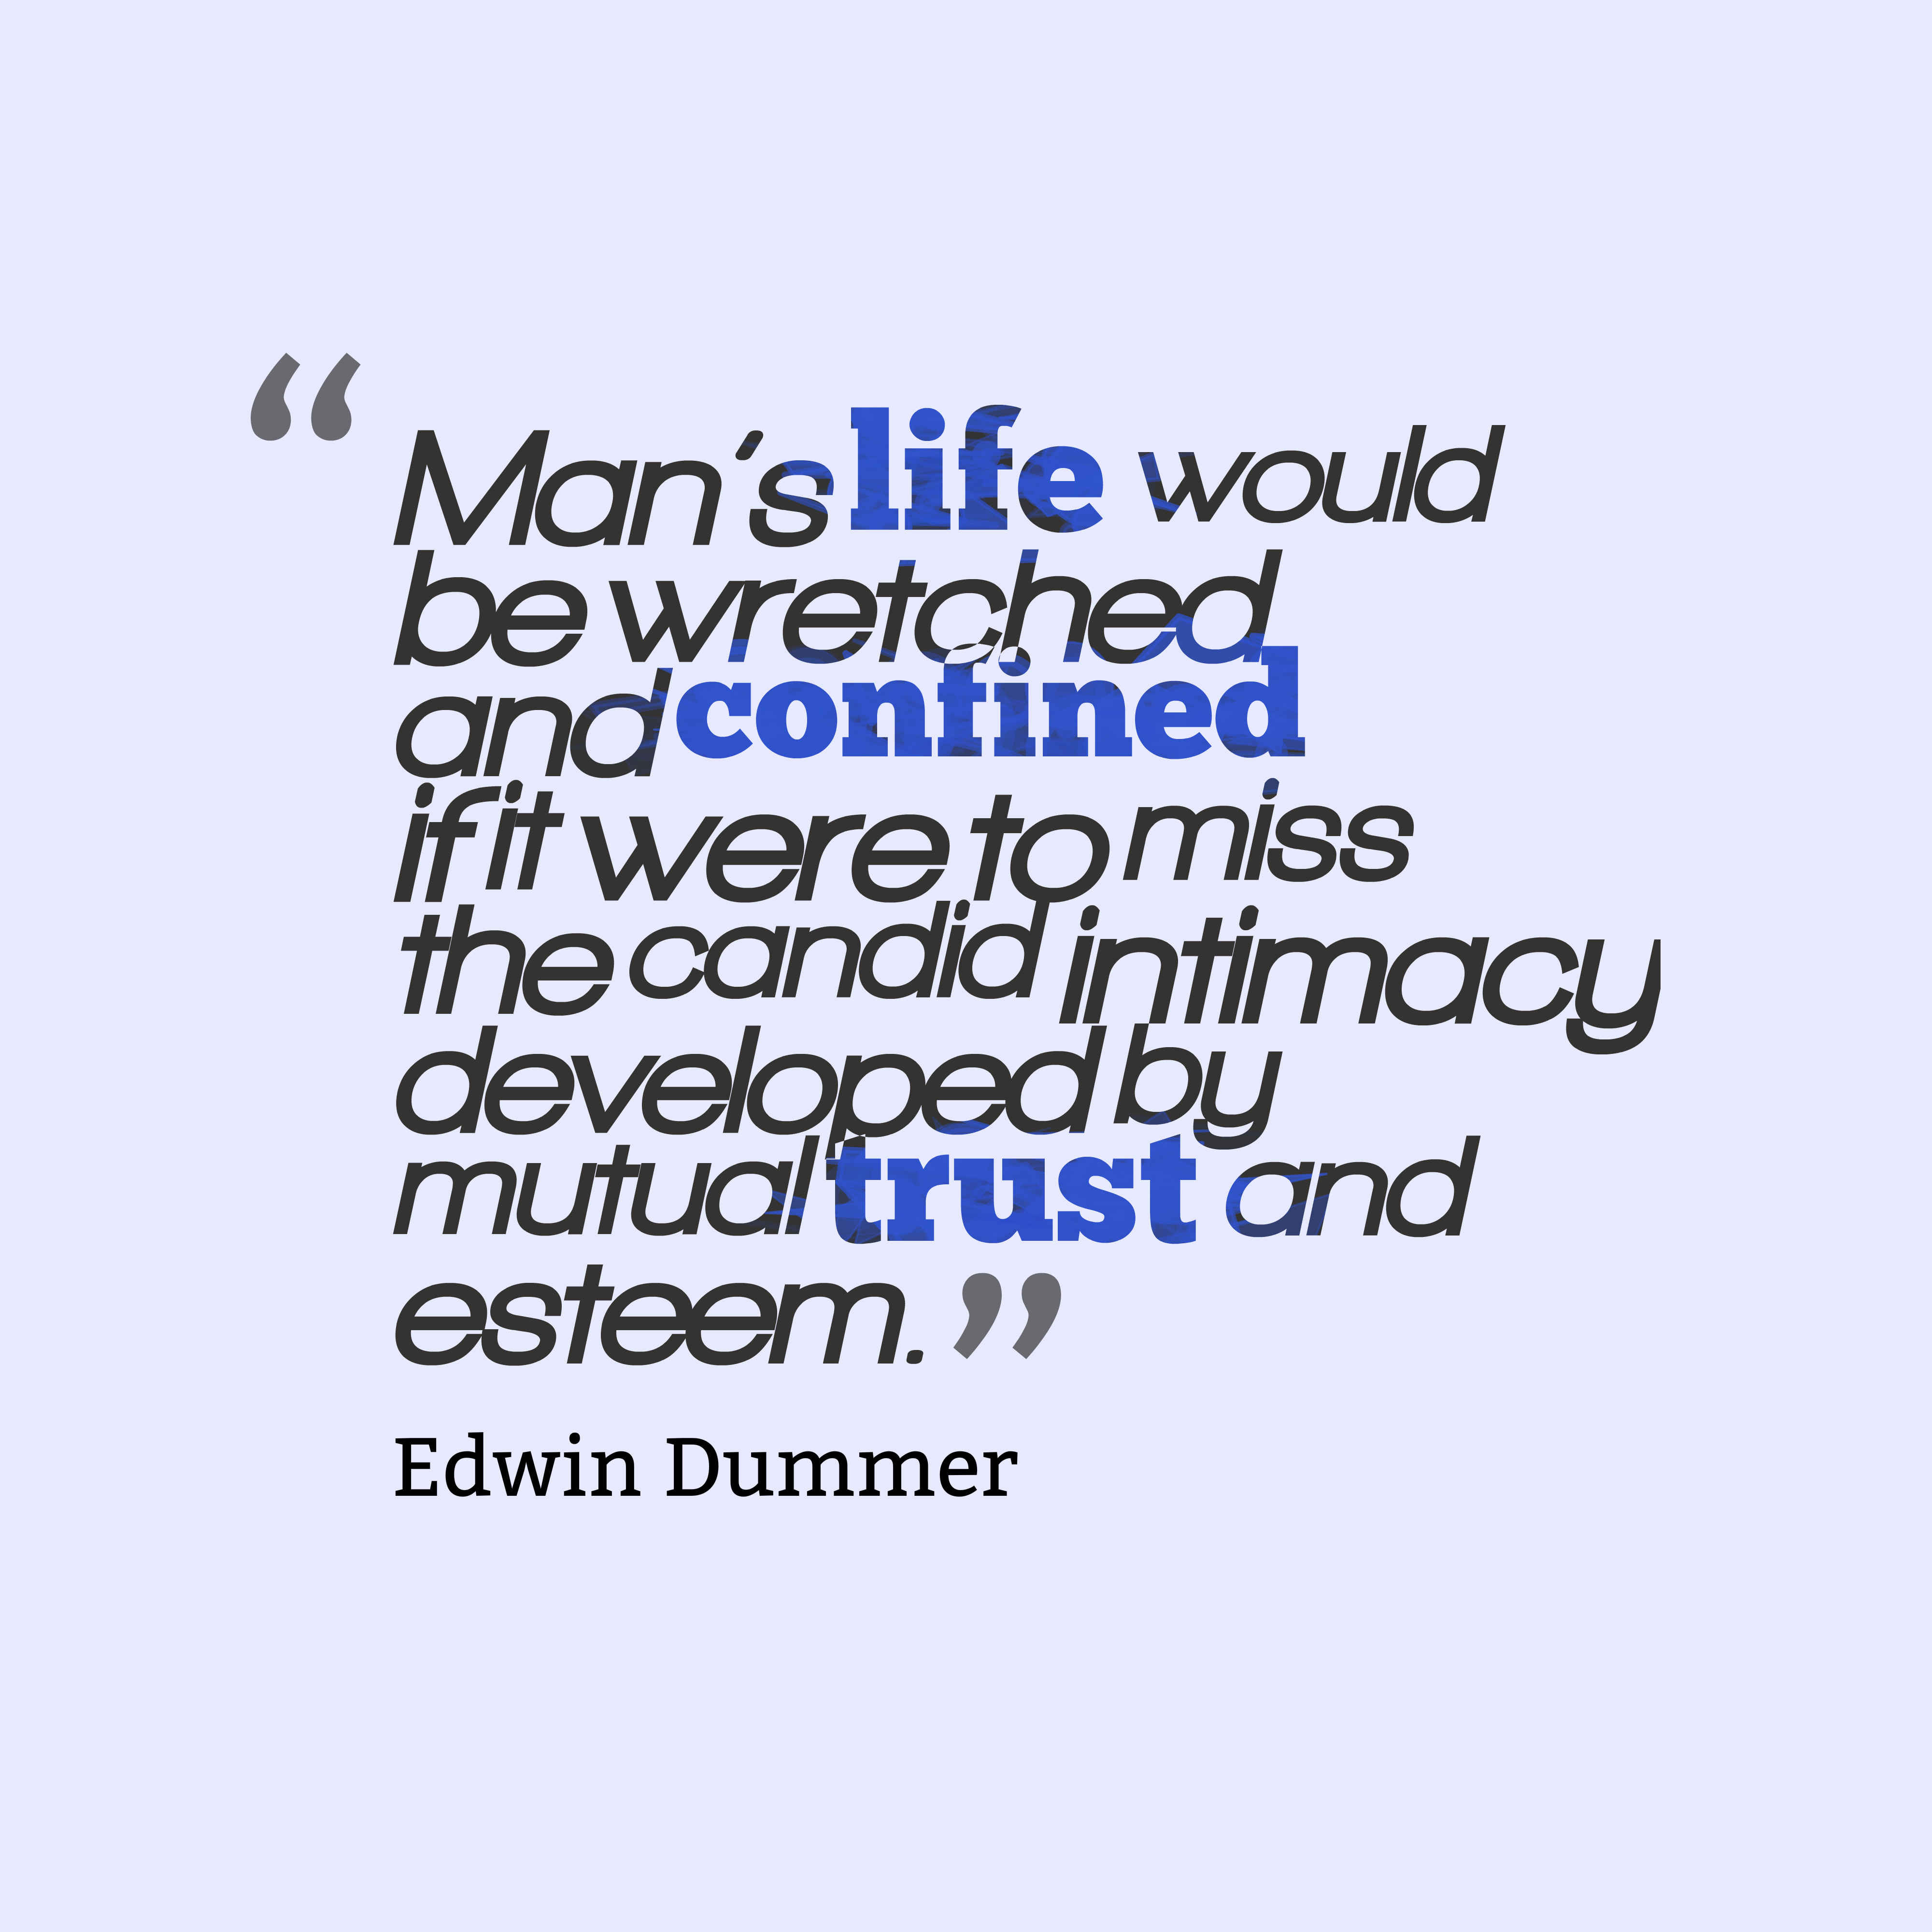 Quotes image of Man's life would be wretched and confined if it were to miss the candid intimacy developed by mutual trust and esteem.